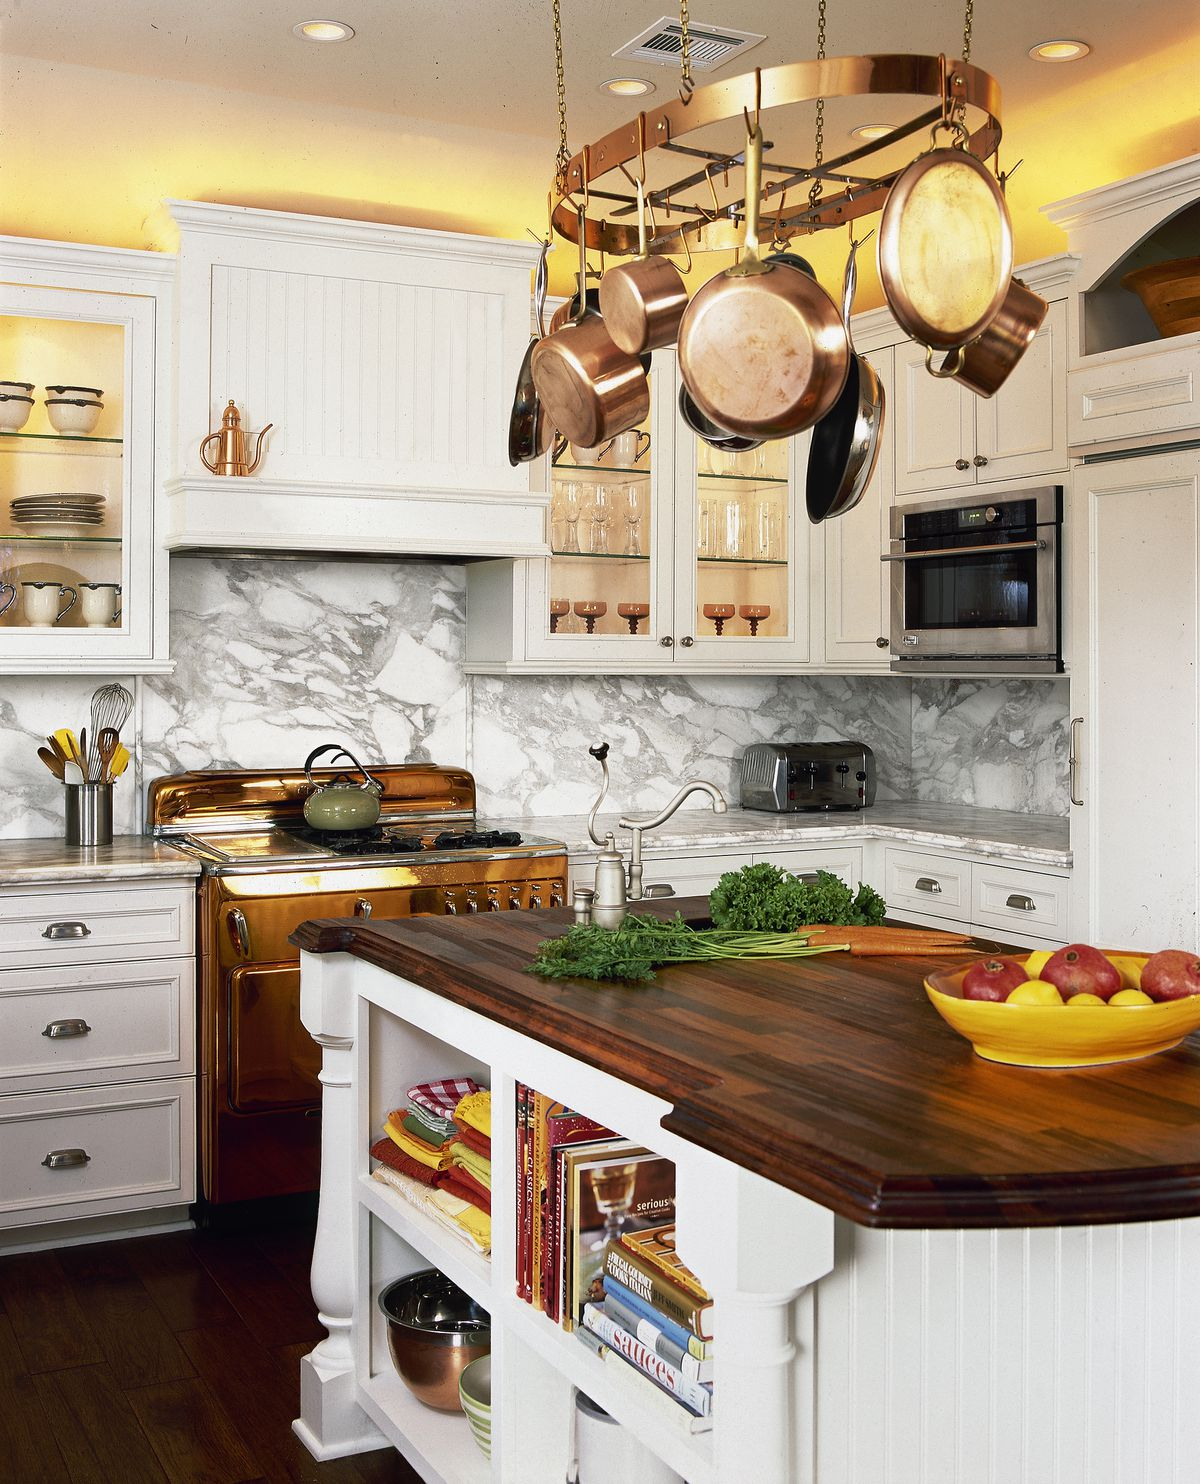 Traditional polished style wood countertop in kitchen.